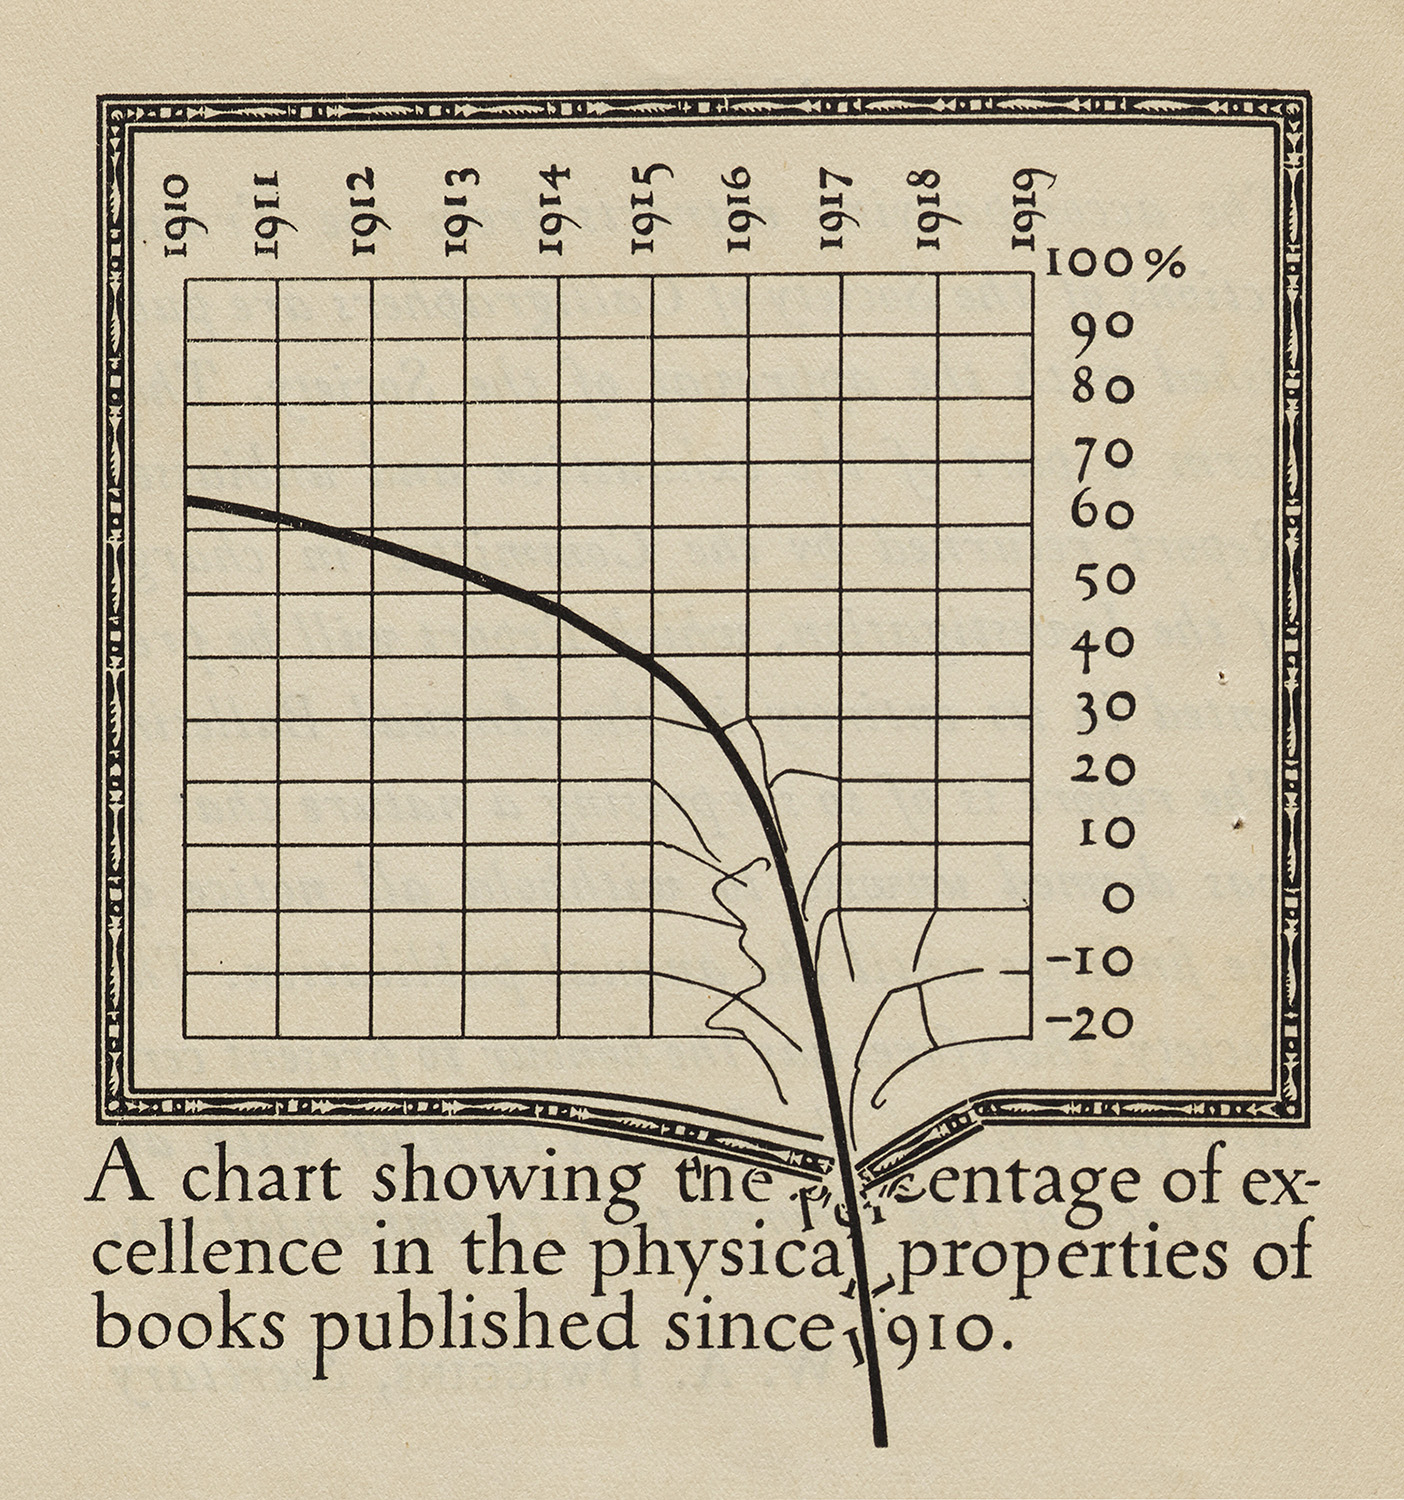 Infographic by Dwiggins